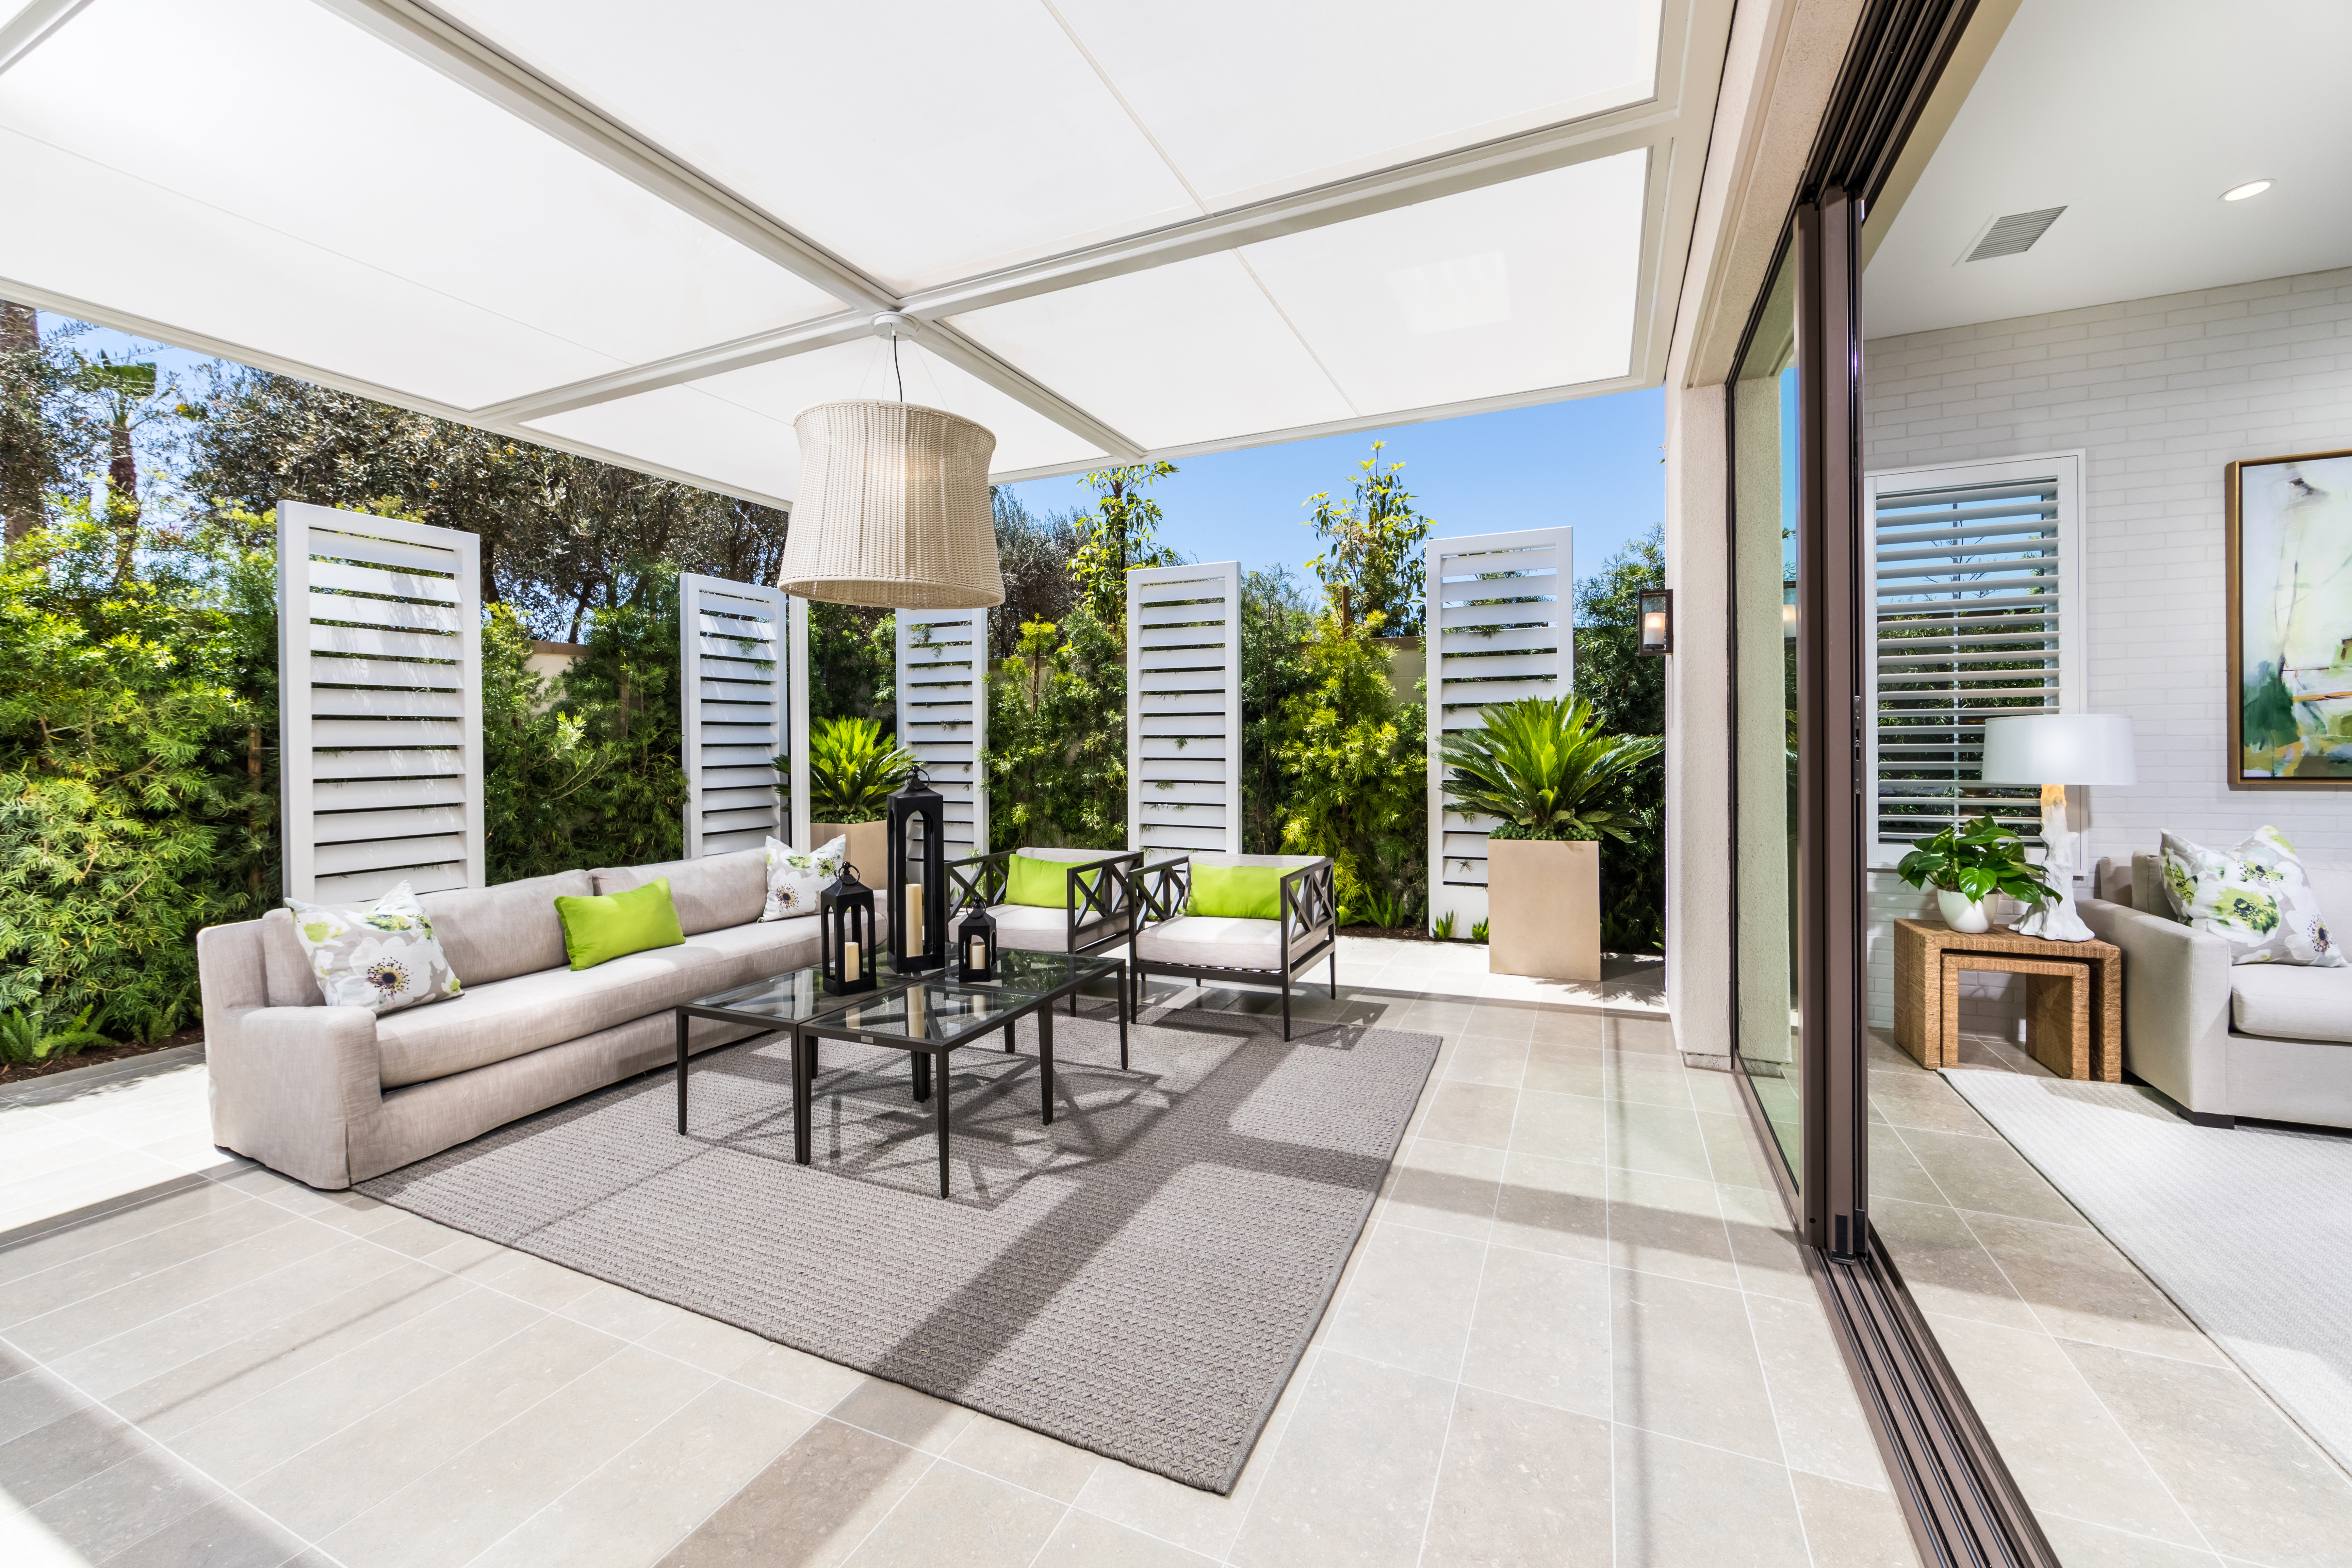 Outdoor Patio at Barcelona Residence 3 in Irvine